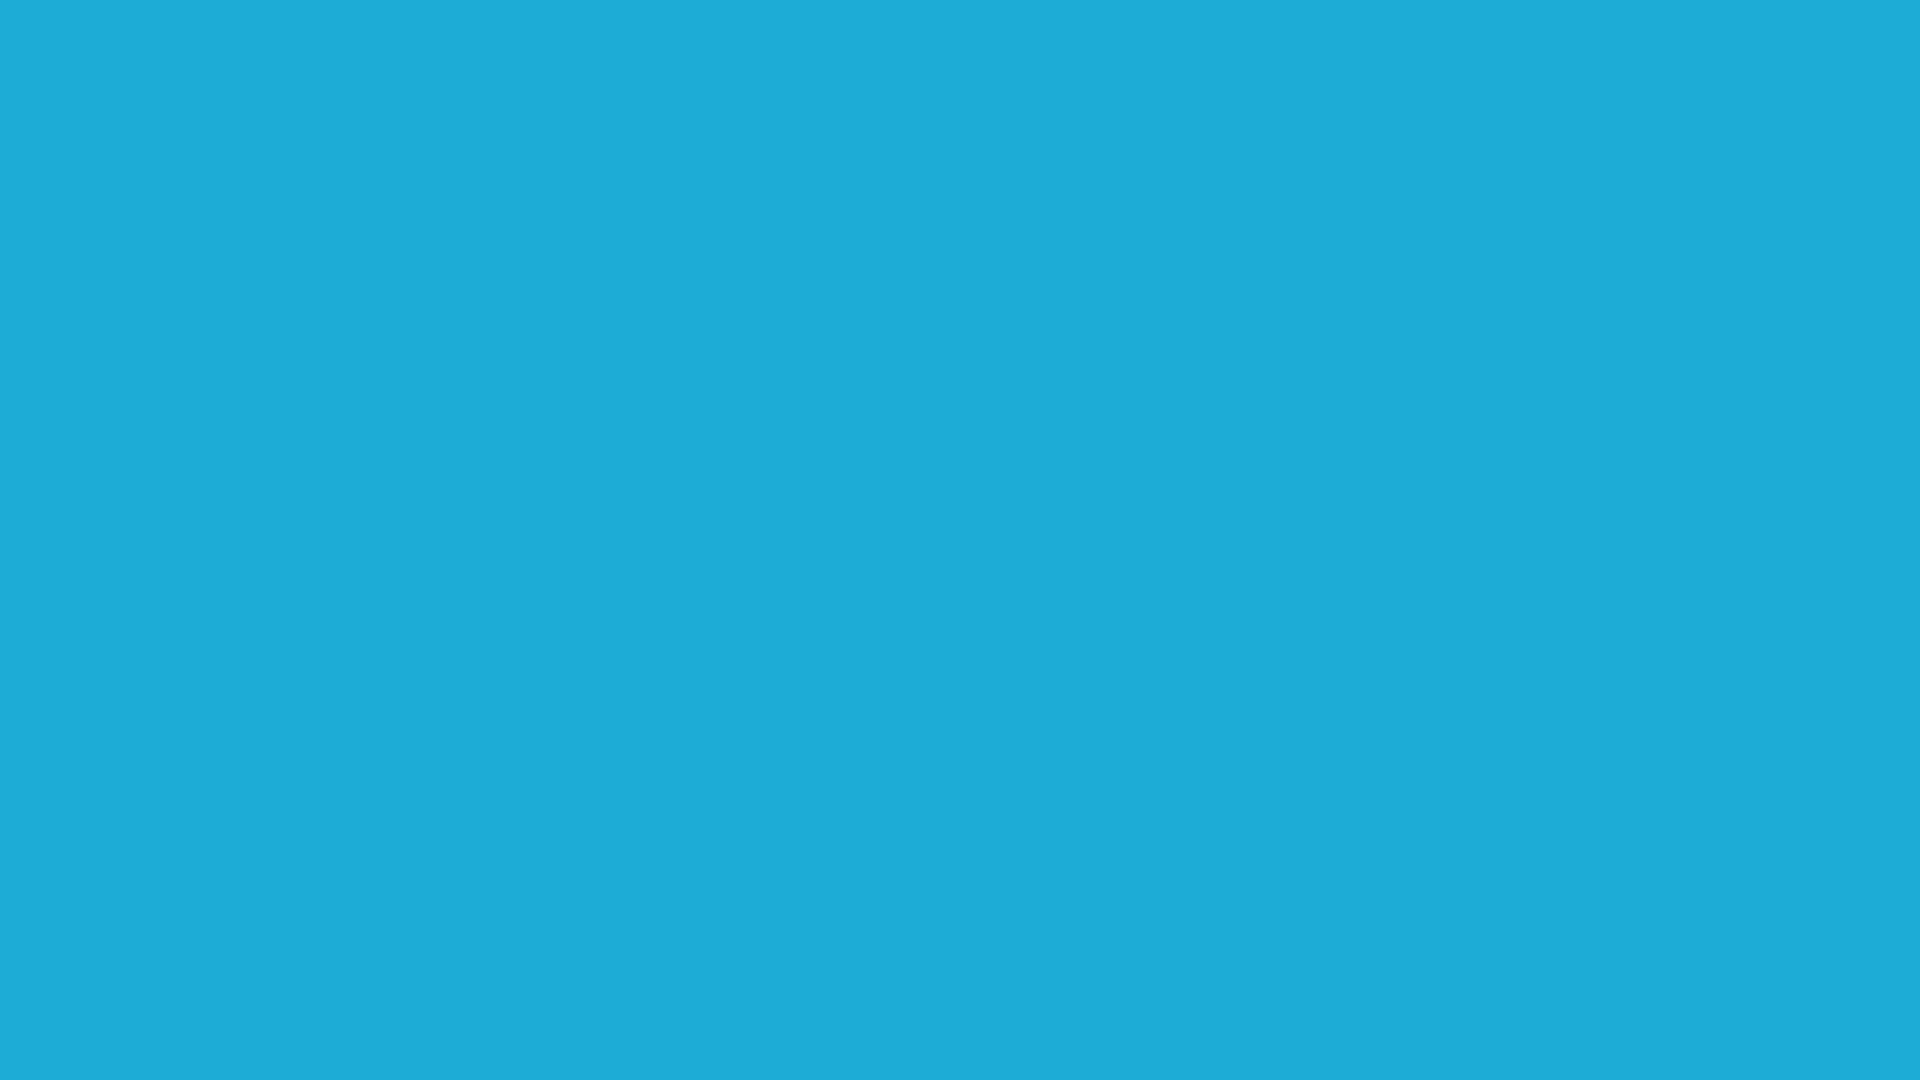 1920x1080 Bright Cerulean Solid Color Background